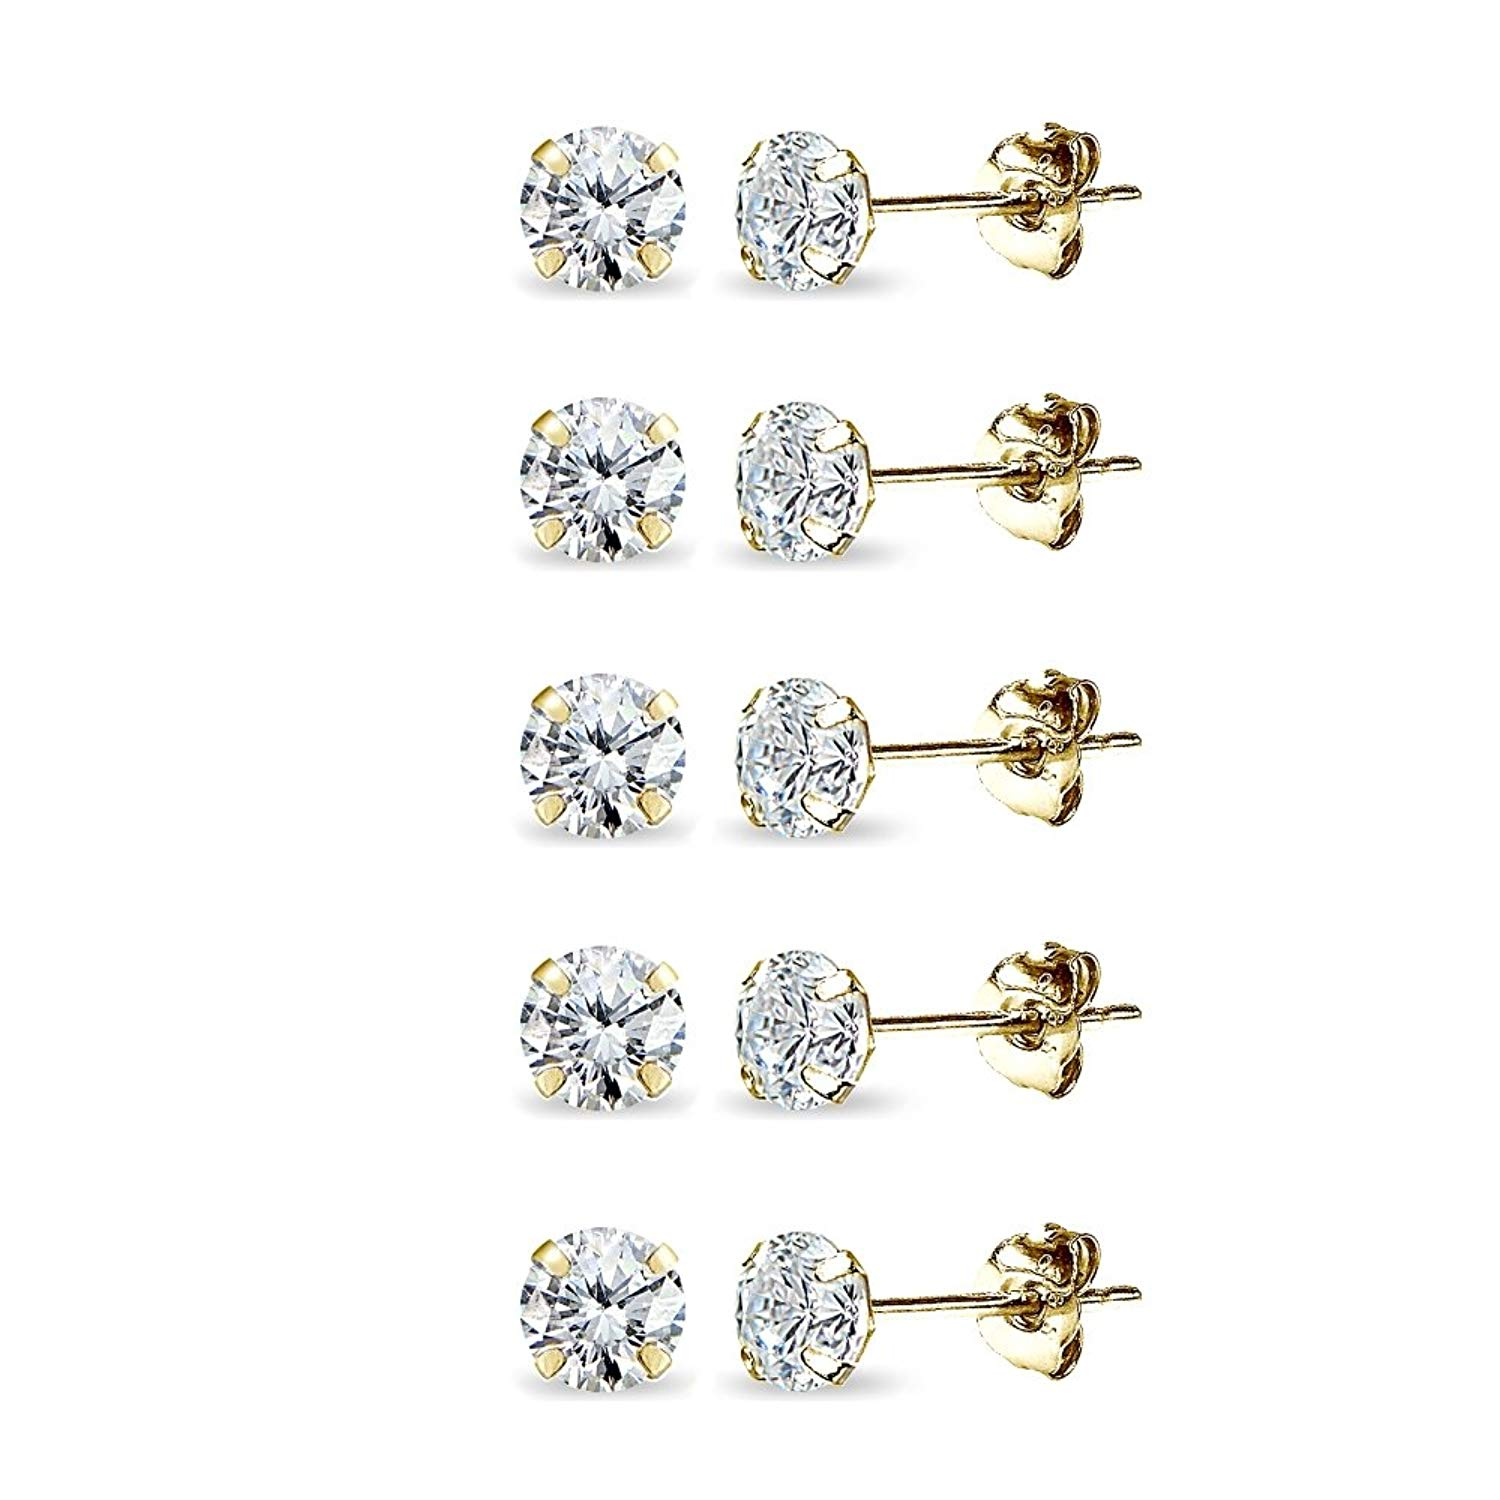 Get Quotations · 5 Pair Set 14K Gold Cubic Zirconia Tiny 3mm Round Unisex Stud  Earrings for Men 2083d036b8